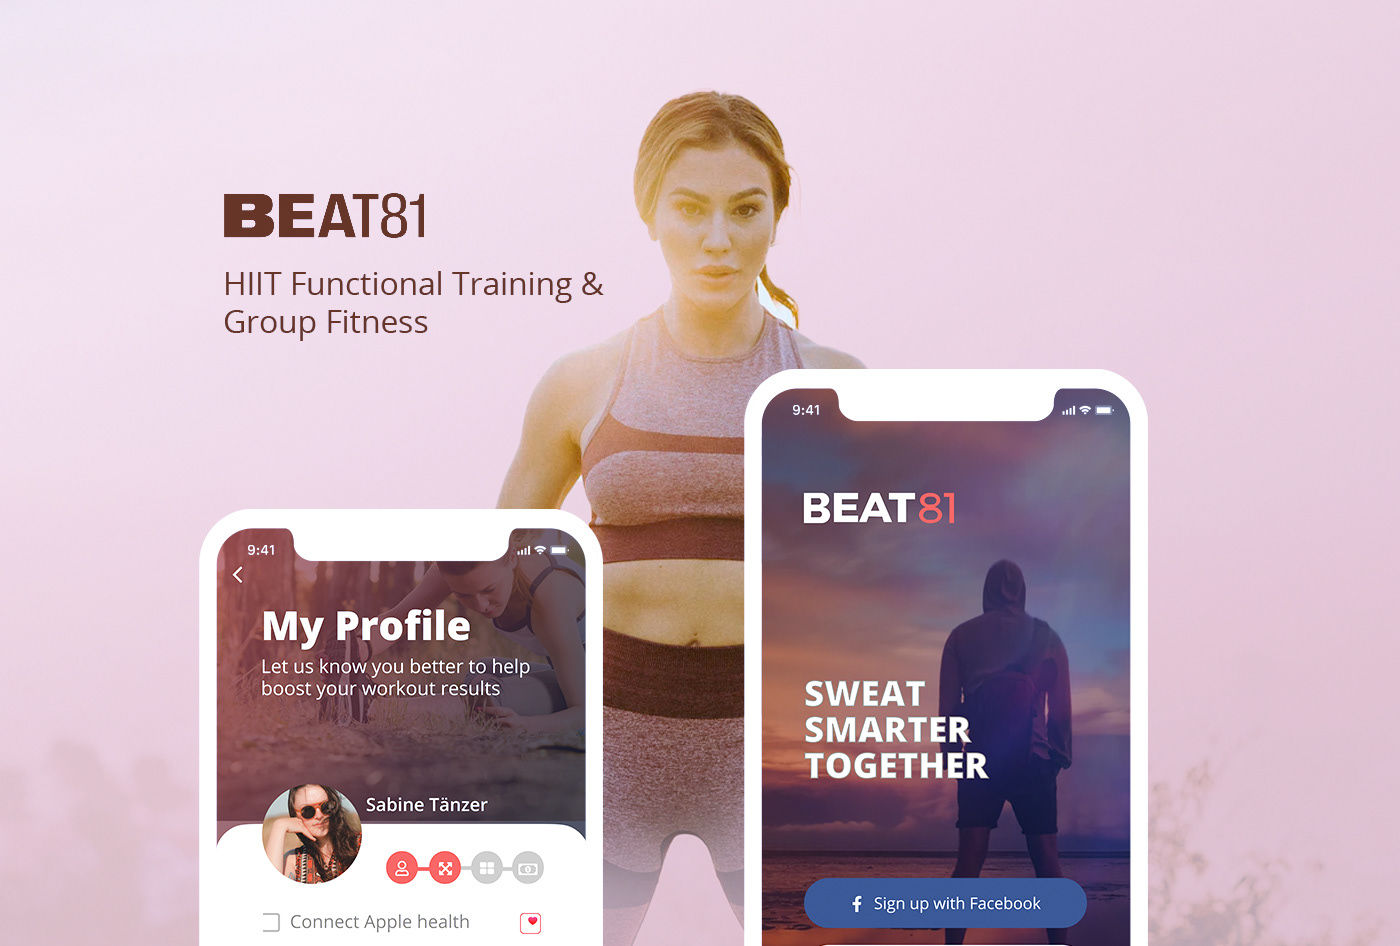 fitness gym Mobile app Outdoor UI UI/UX user experience user interface ux workout